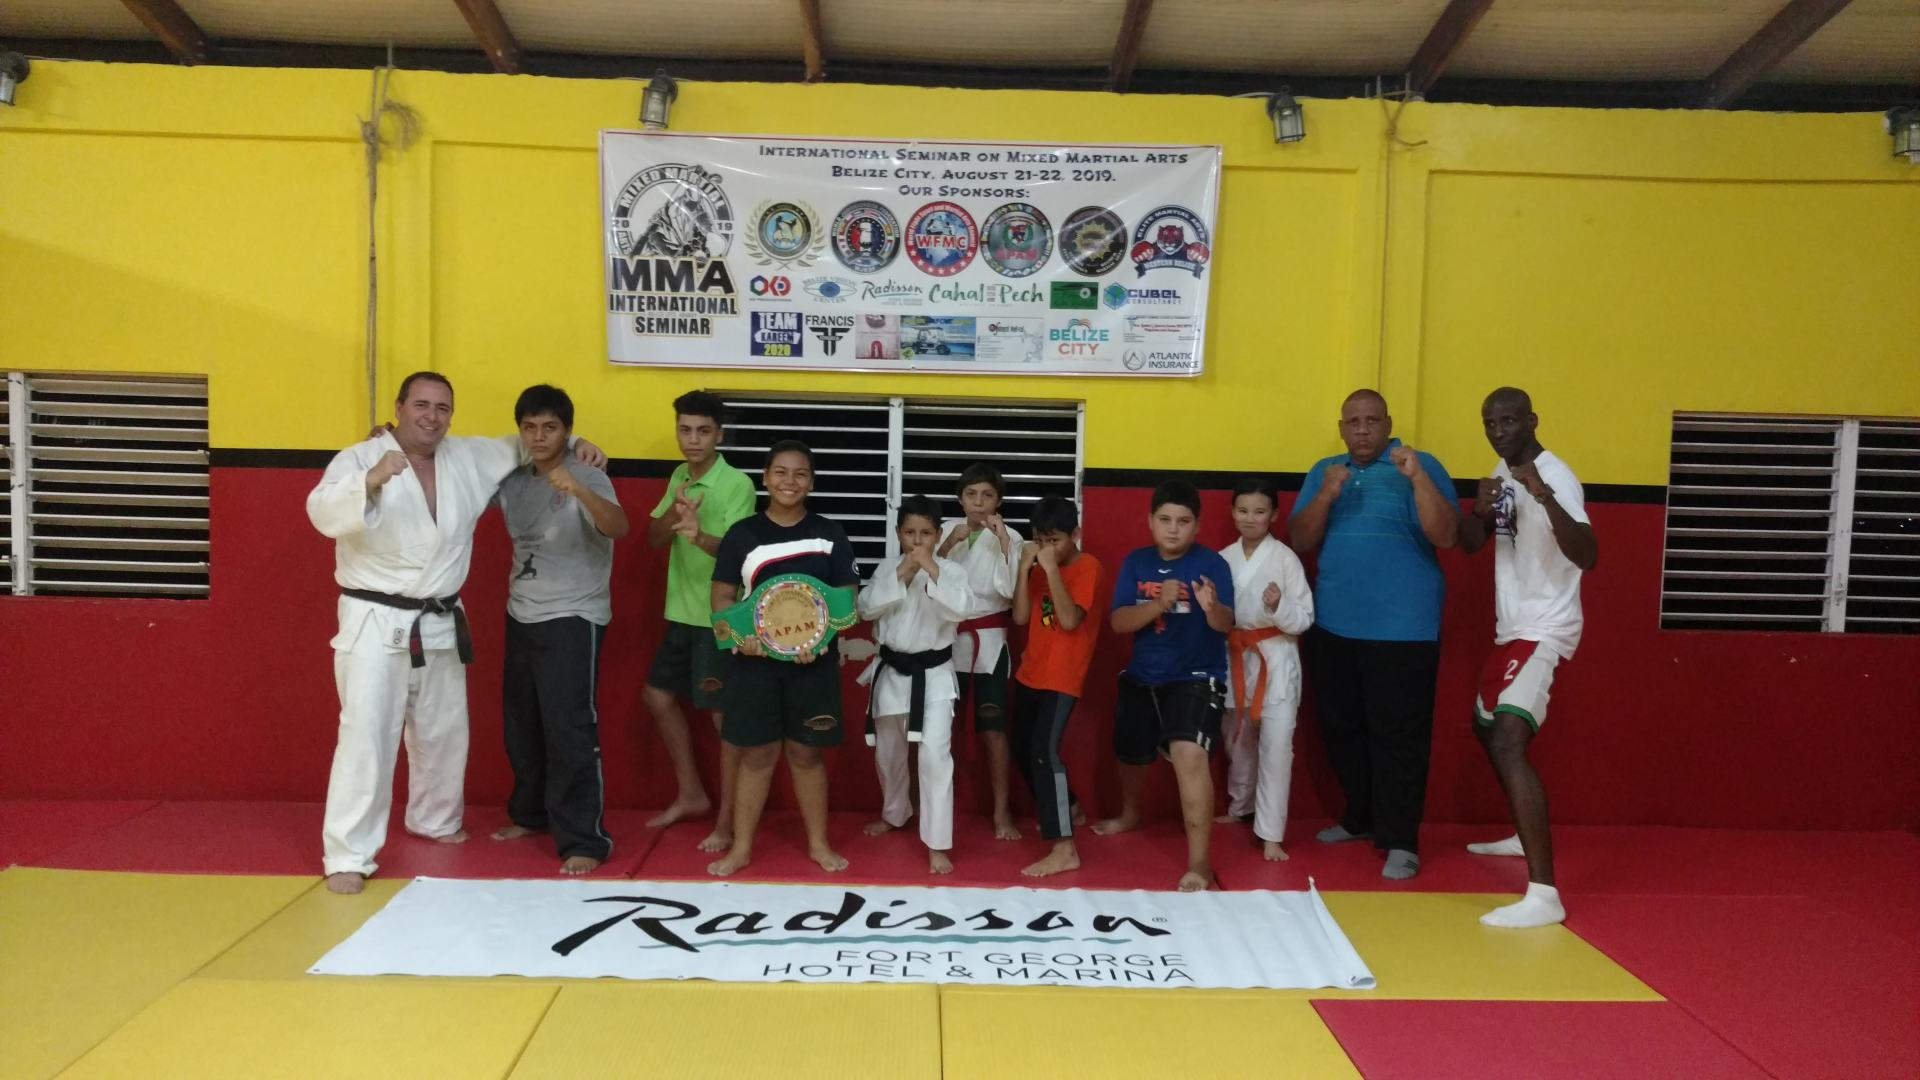 International Seminar on Mixed Martial Arts on August 2019, taught by Master Jorge Zeki from Argentina